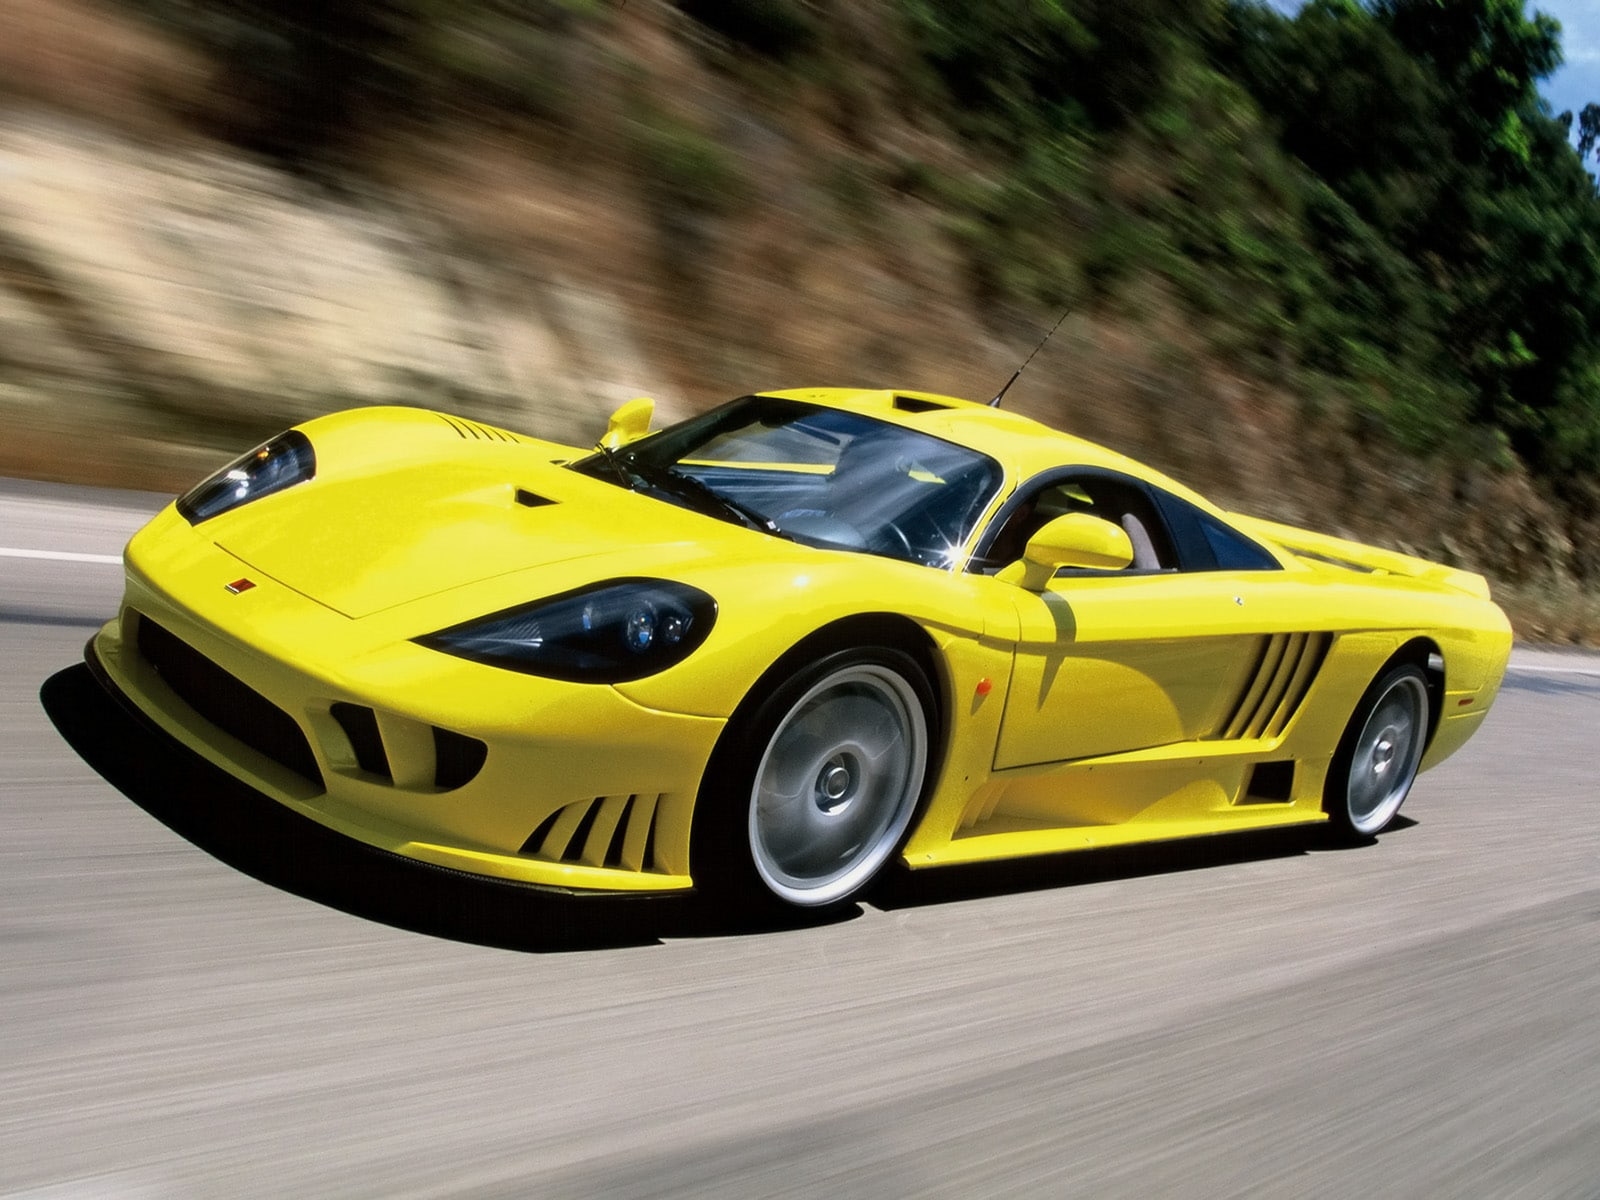 saleen s7 fastest cars speed turbo twin fast mph seconds service prices supercar engine ever hits